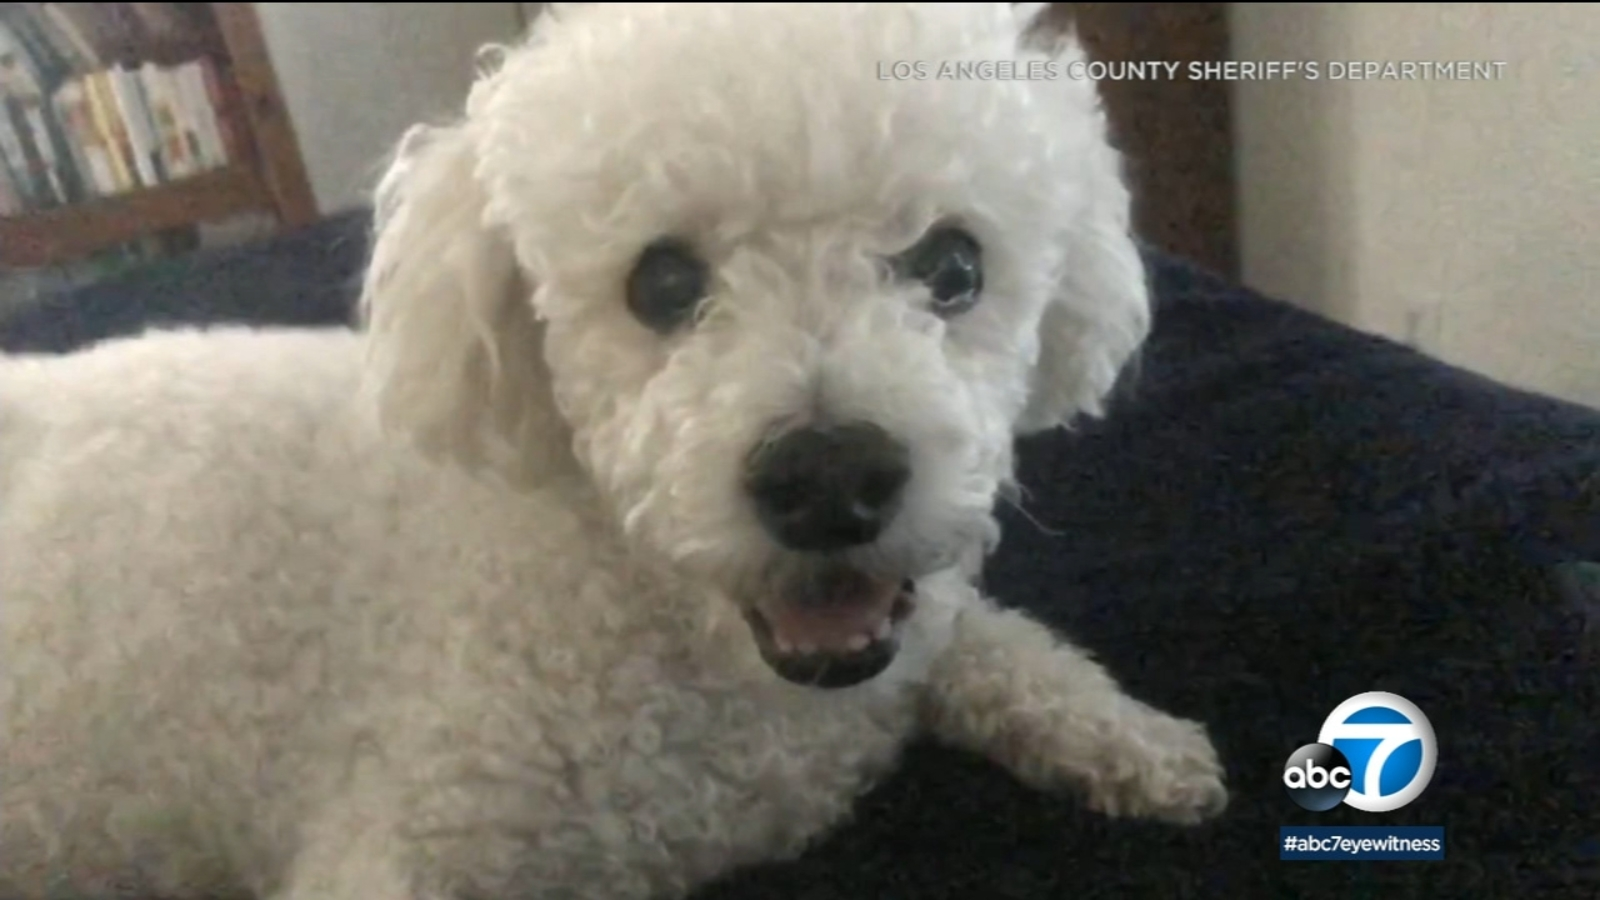 Dog, 13, who requires daily meds stolen from San Dimas family